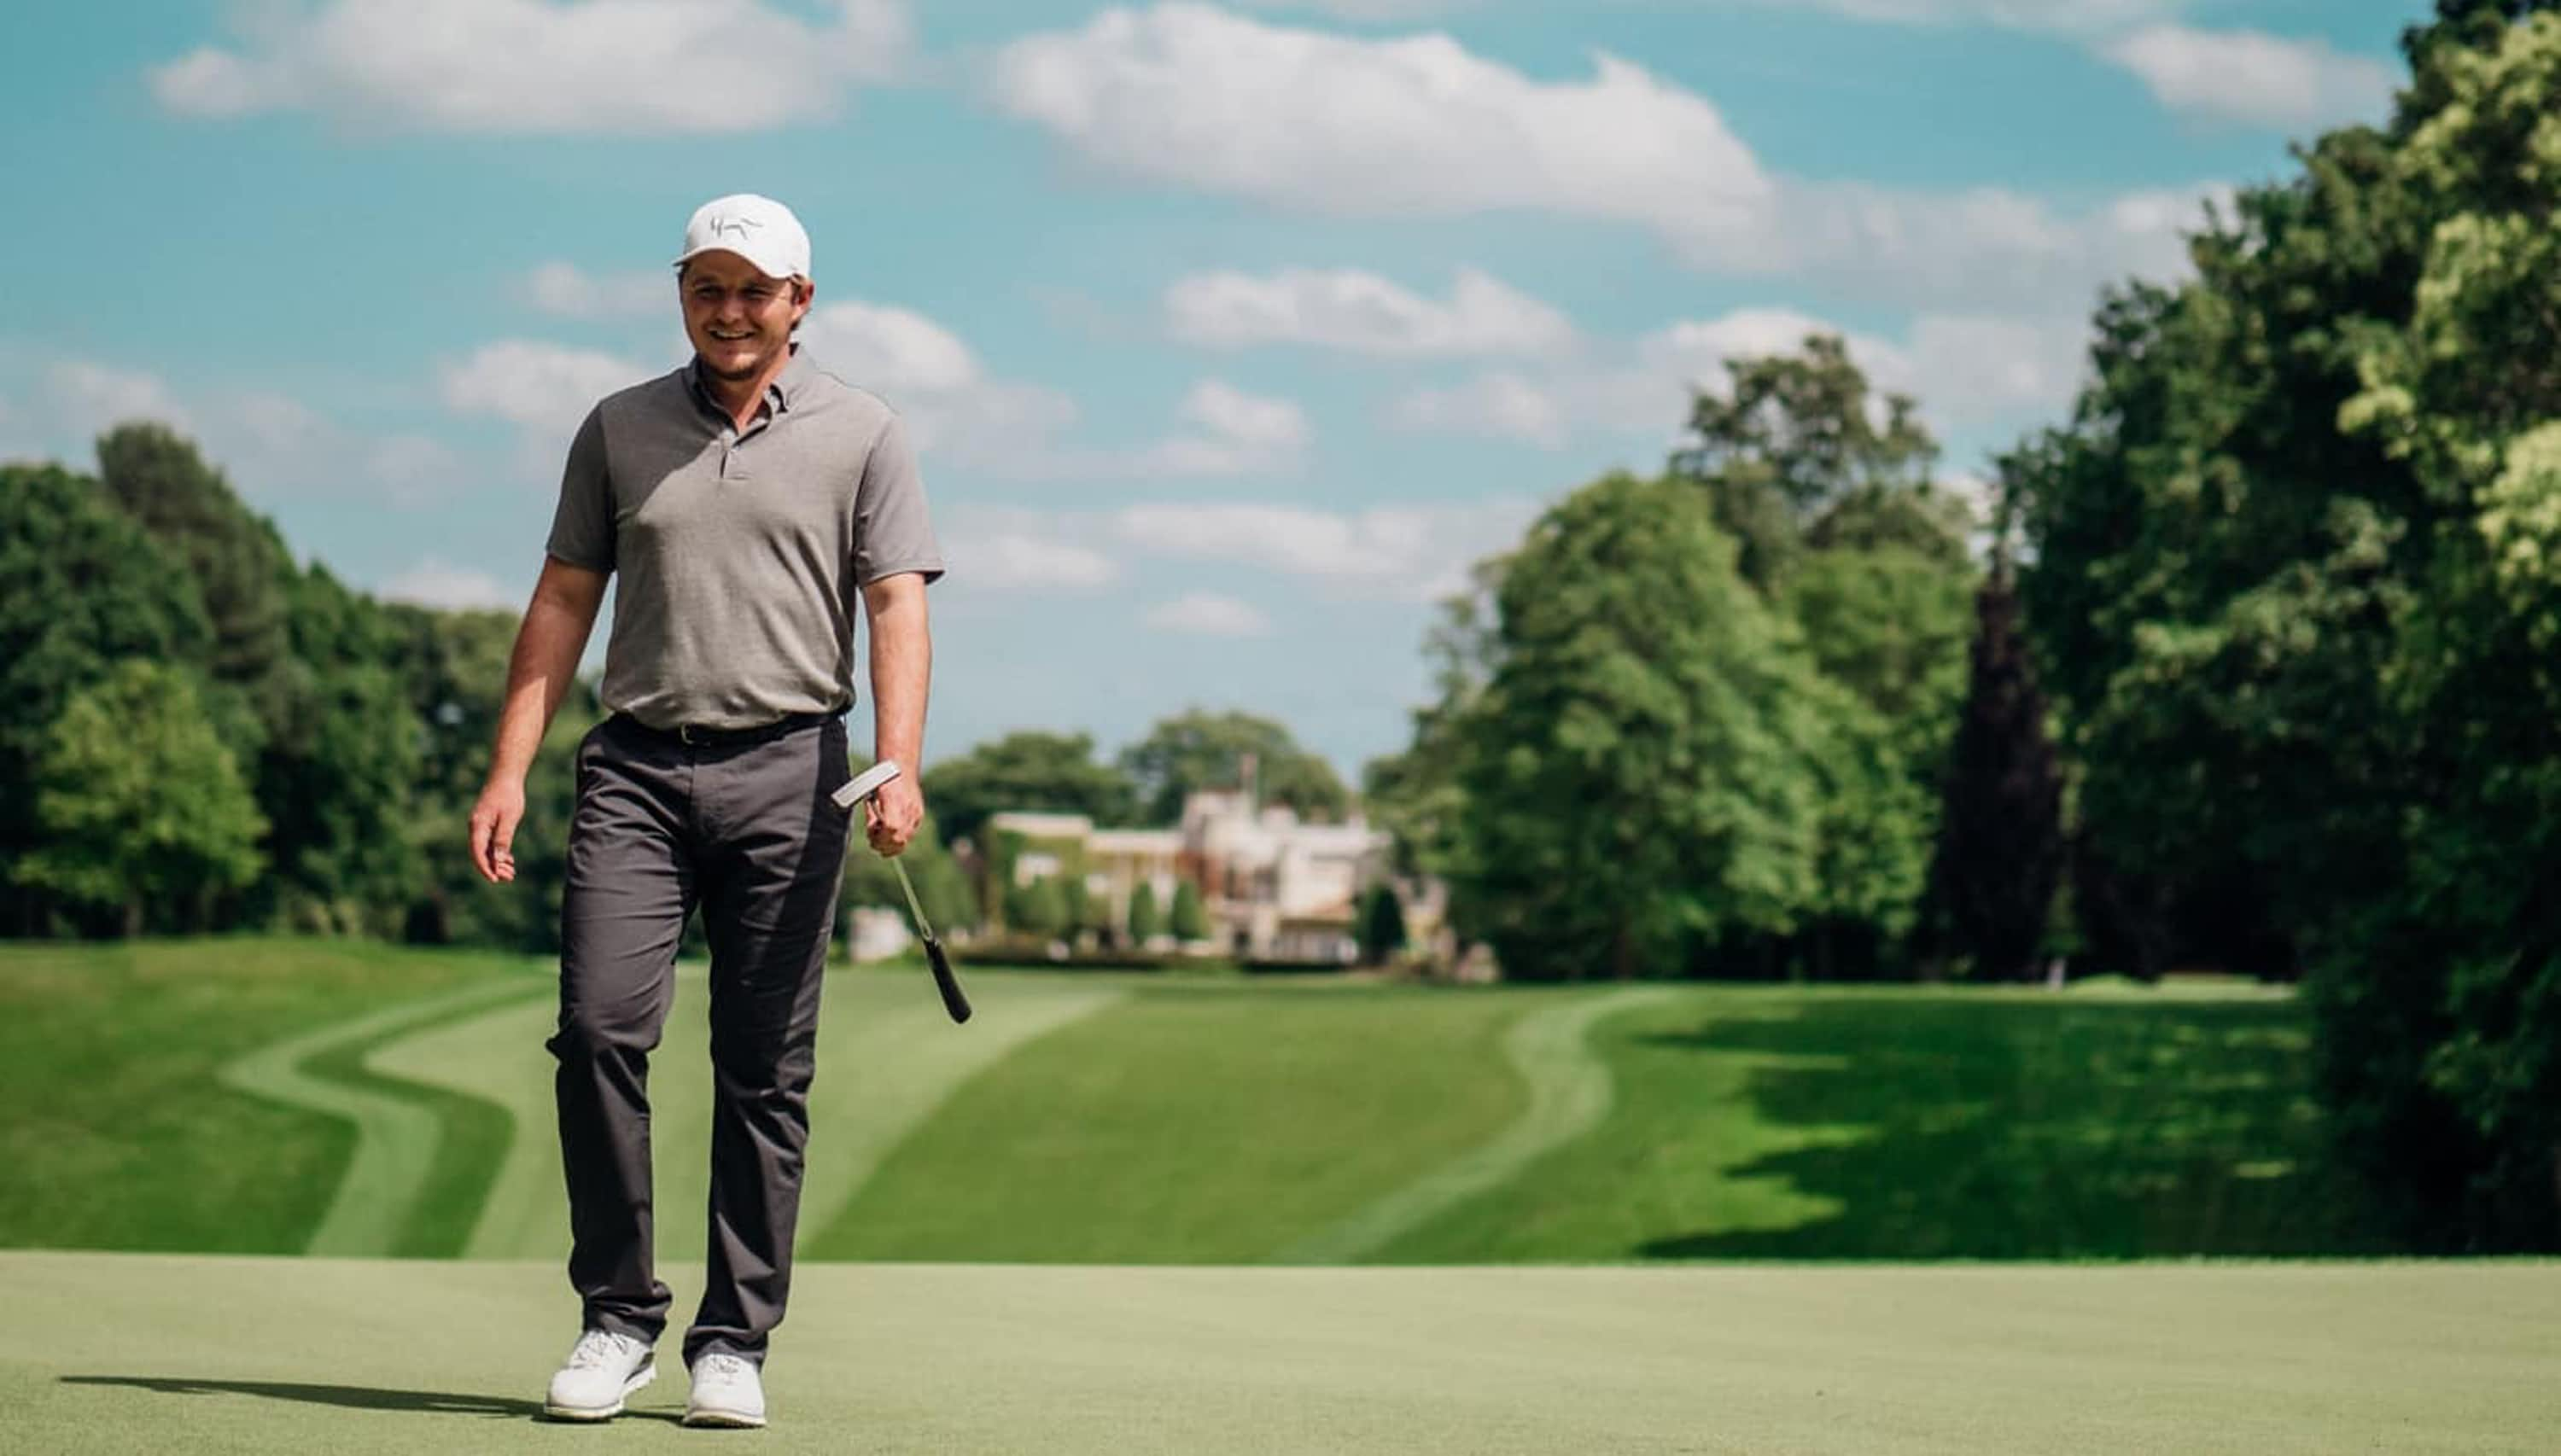 Wolsey Golf | AW19 Collection